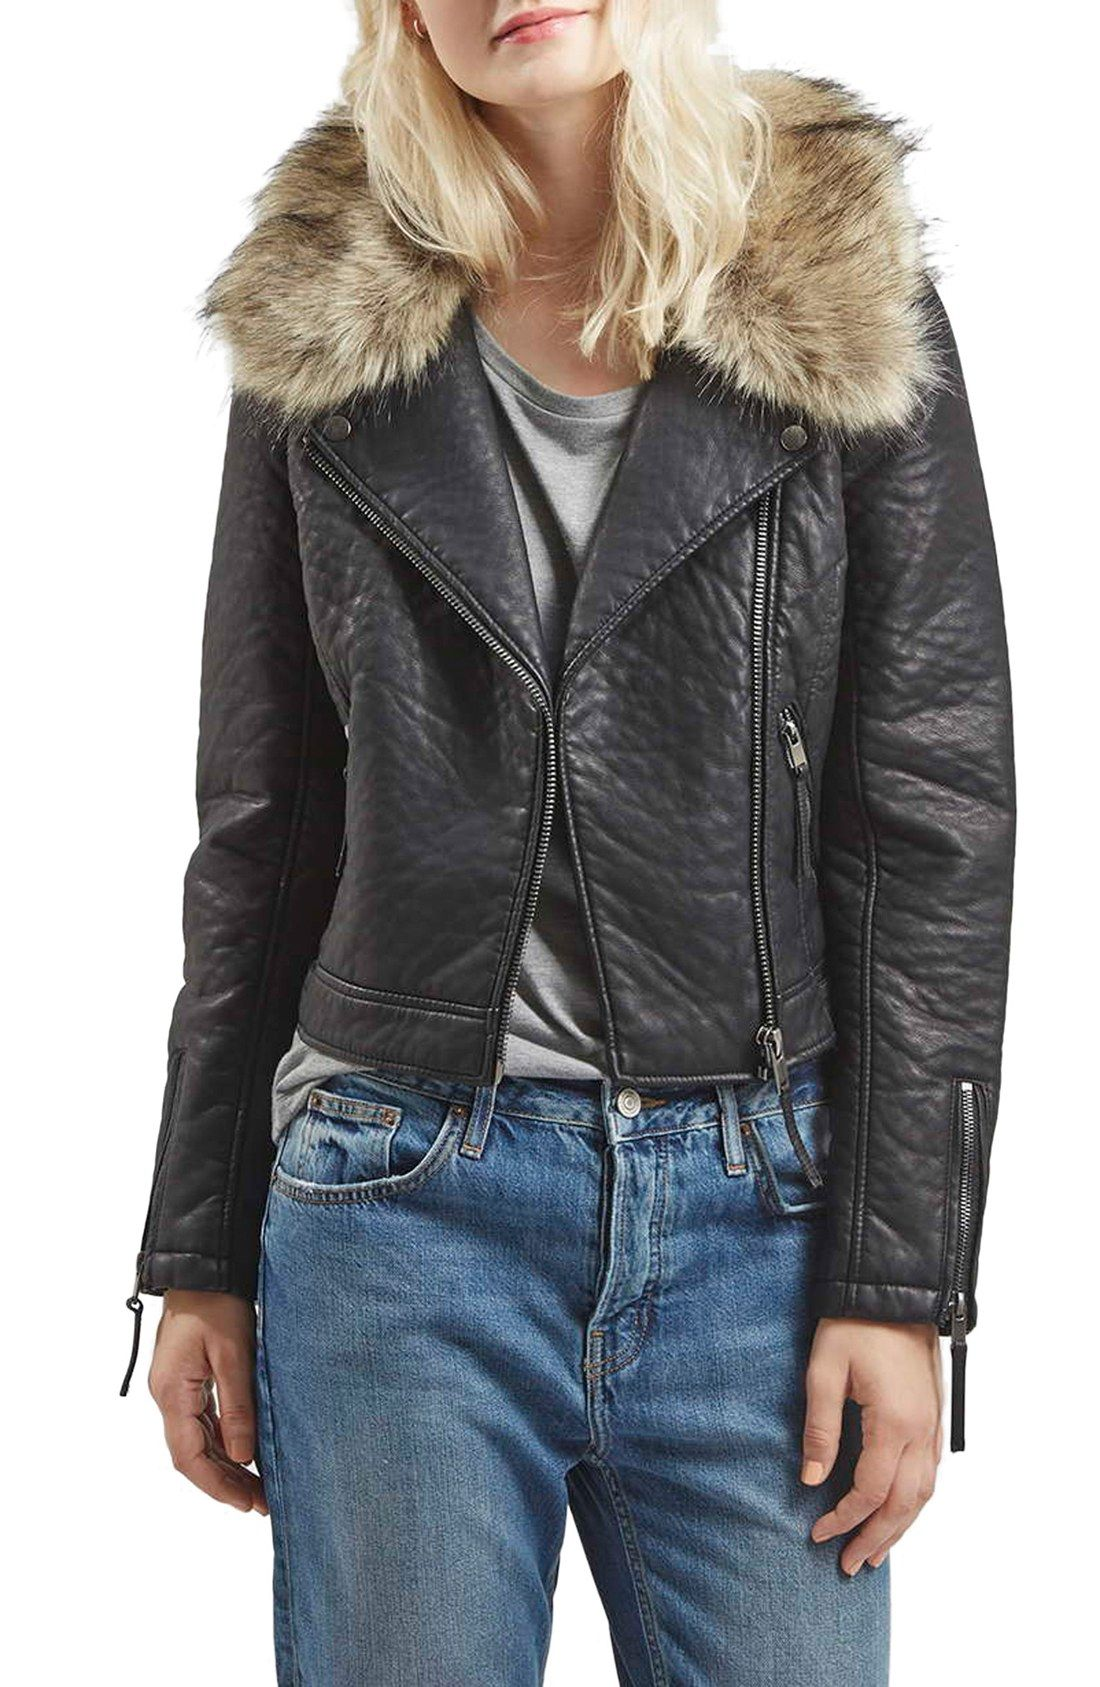 Topshop Faux Leather Moto Jacket with Removable Faux Fur Collar ...